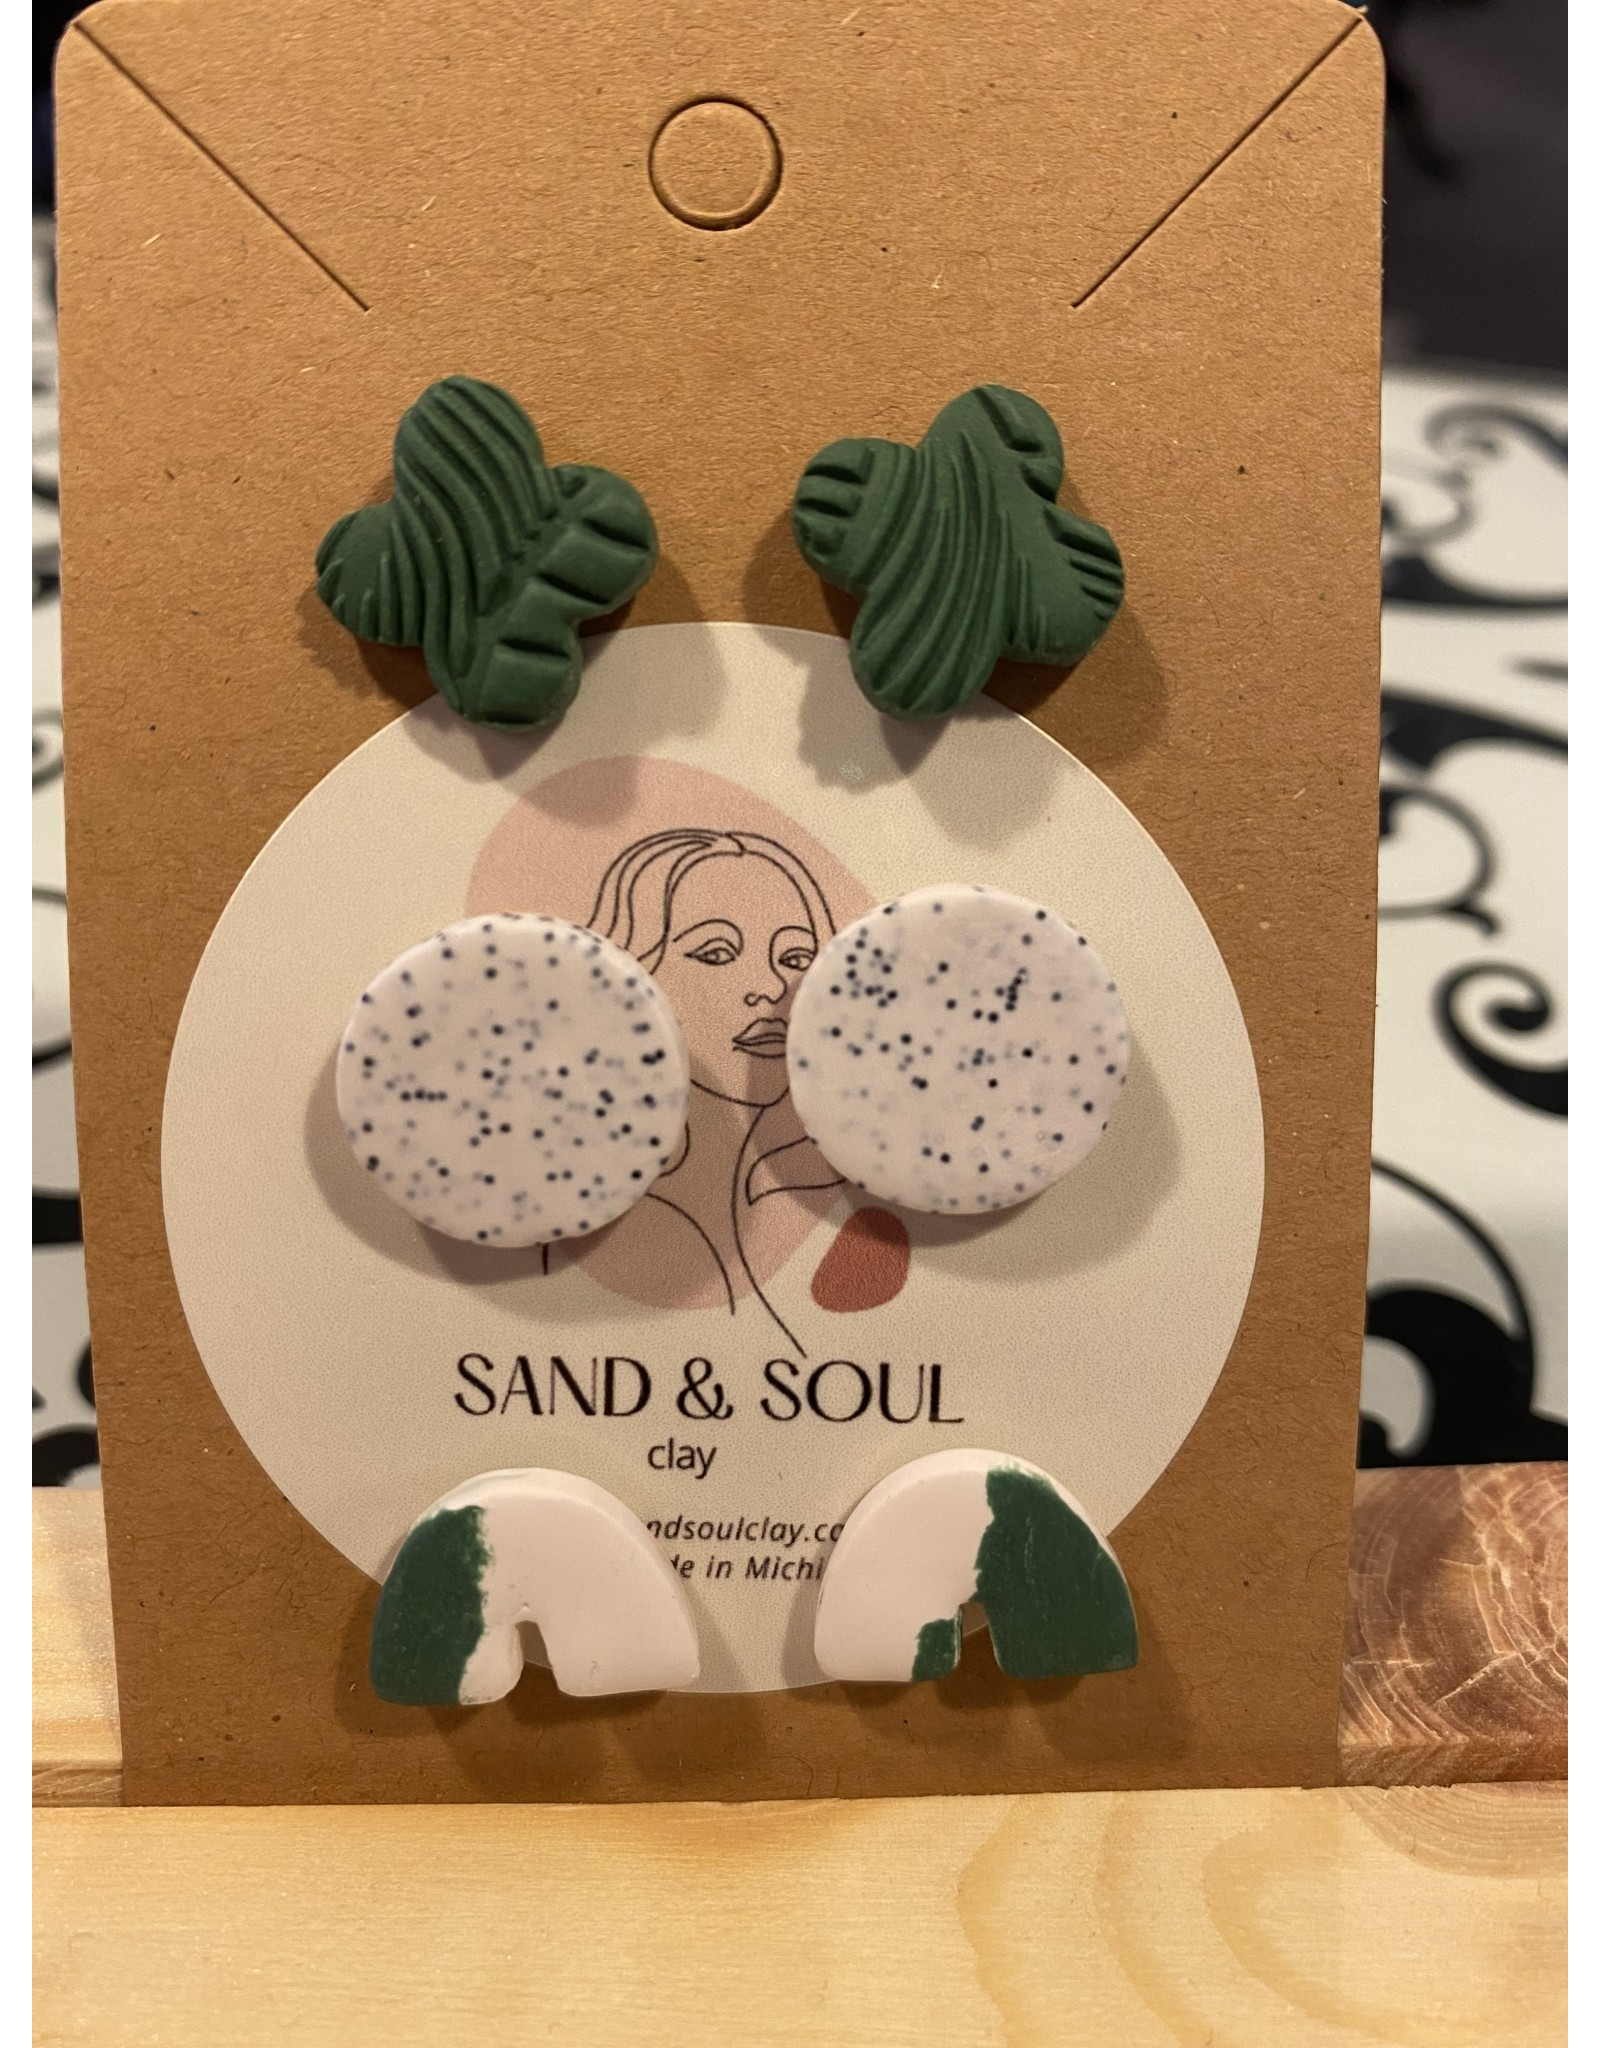 Sand & Soul Smooth & Textured Clay Stud Earrings